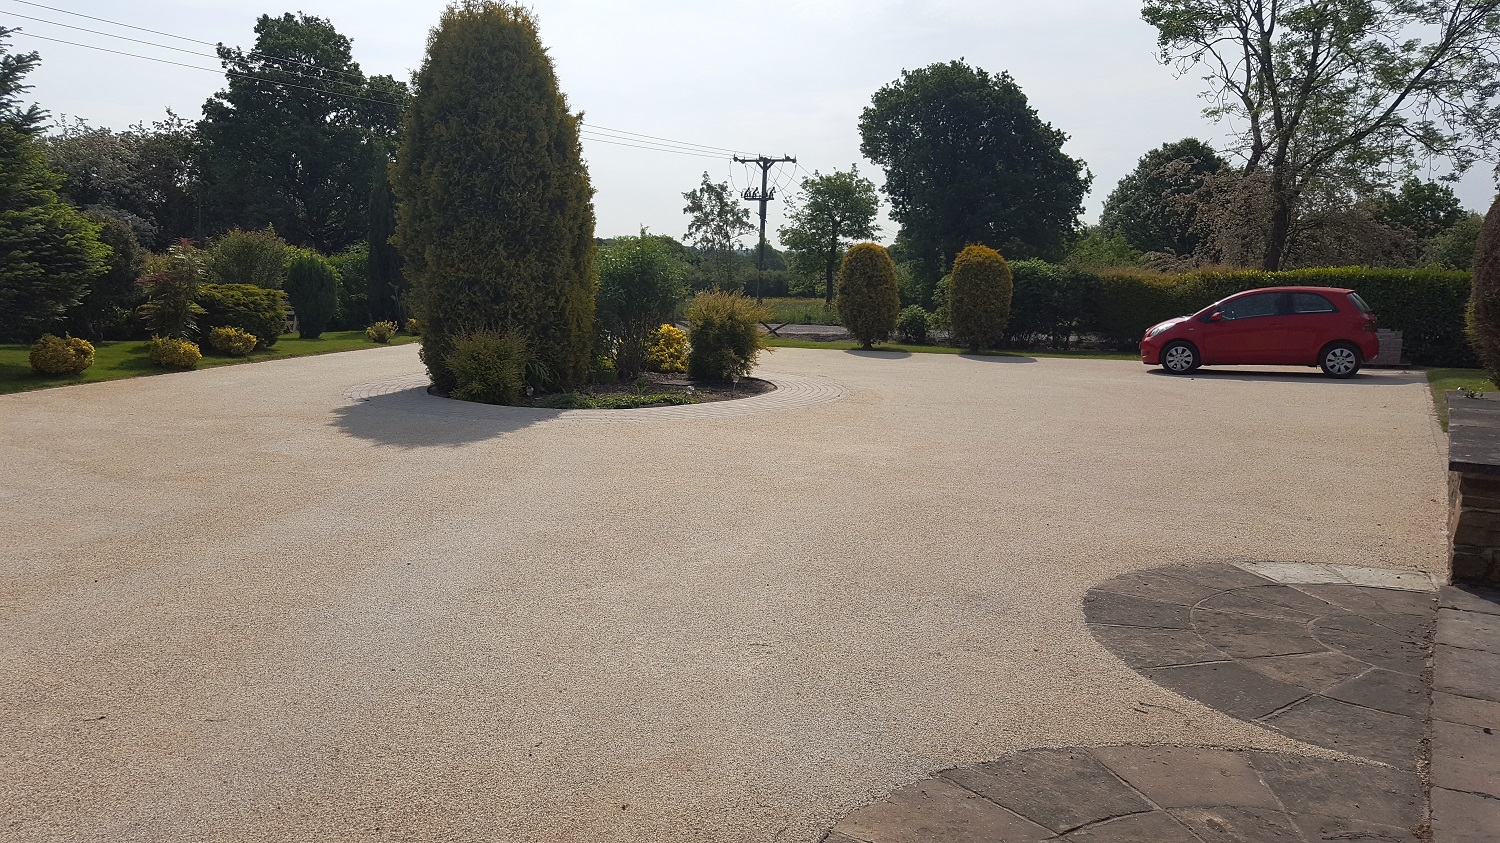 B4b - Resin Bonded Driveway Surfacing at Wingerworth in Chesterfield